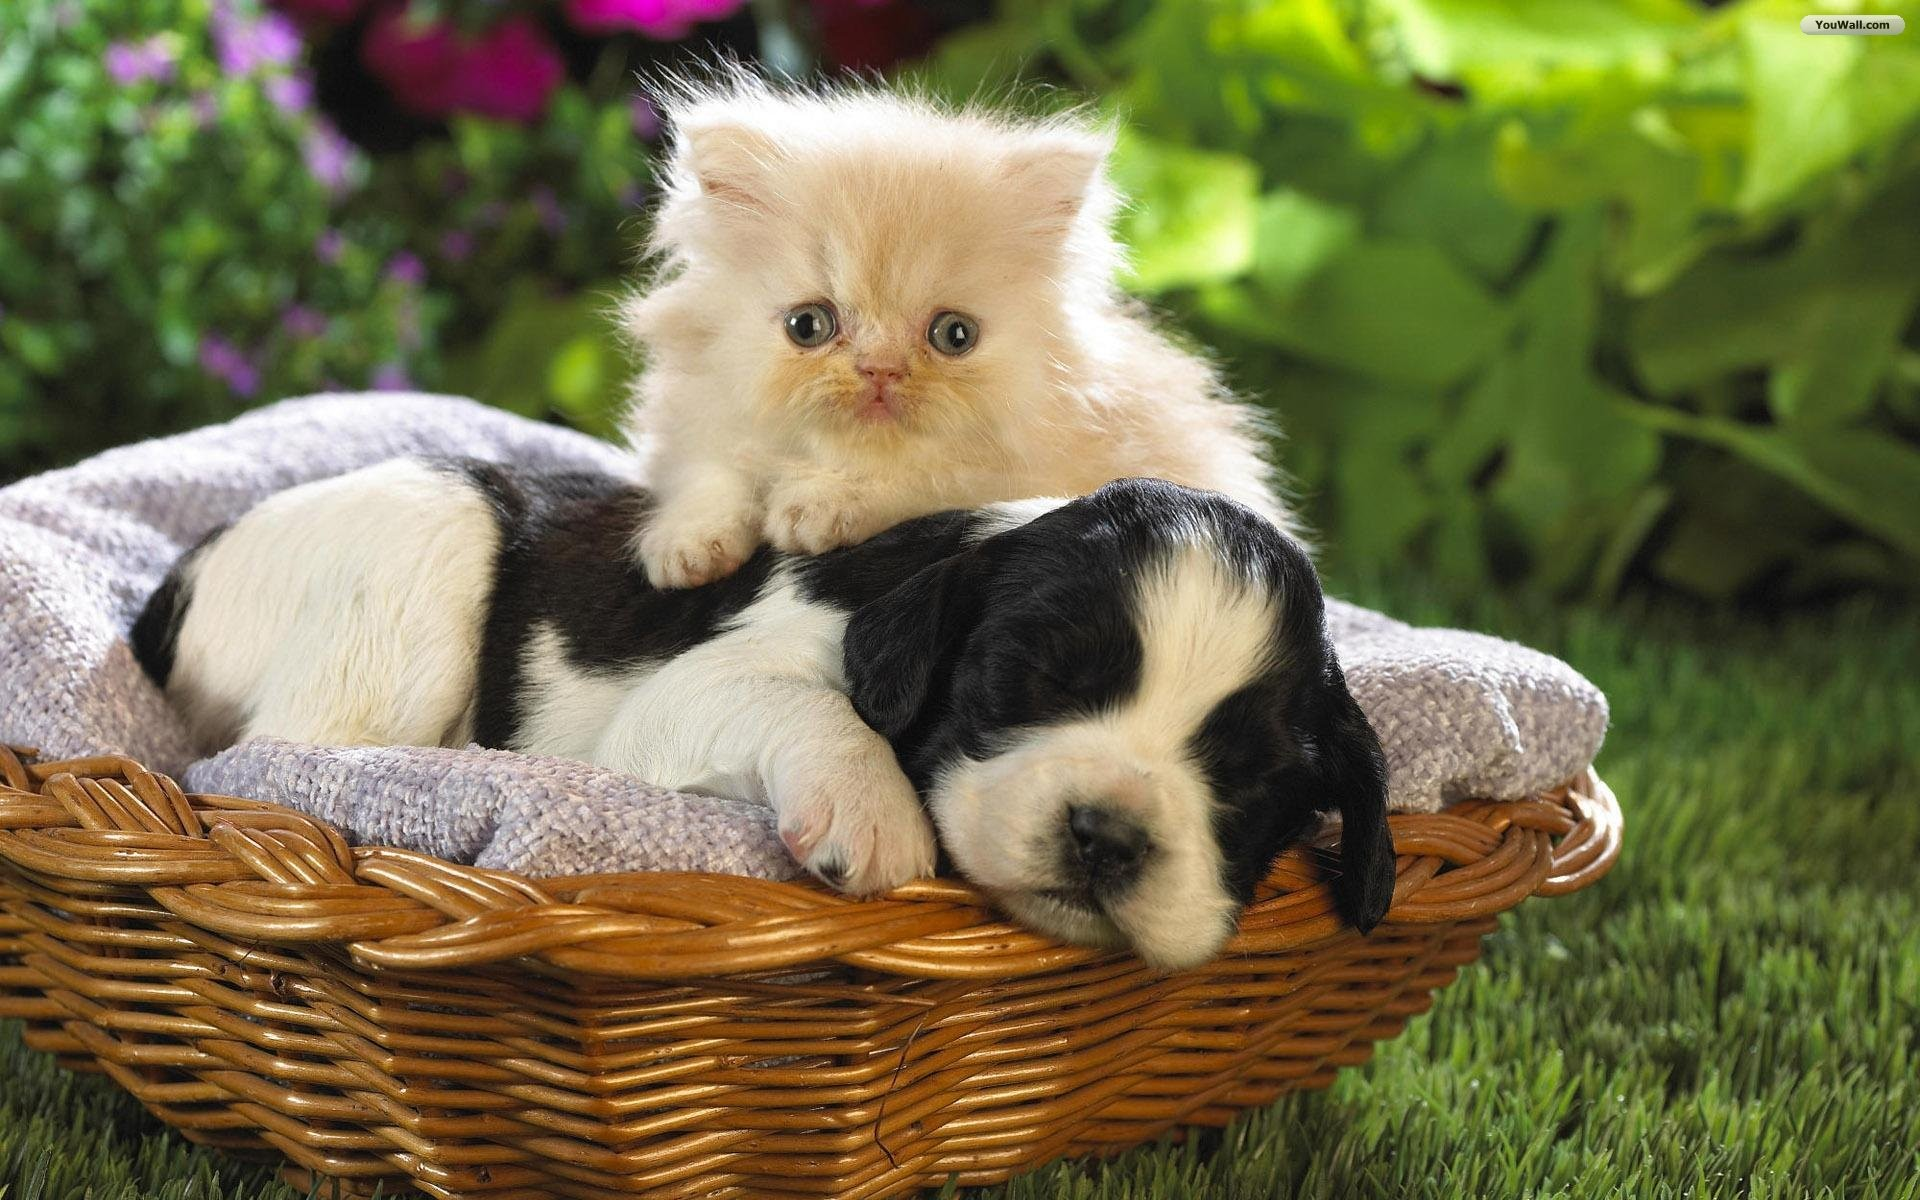 Cute Dog Wallpapers Android Apps on Google Play HD Wallpapers